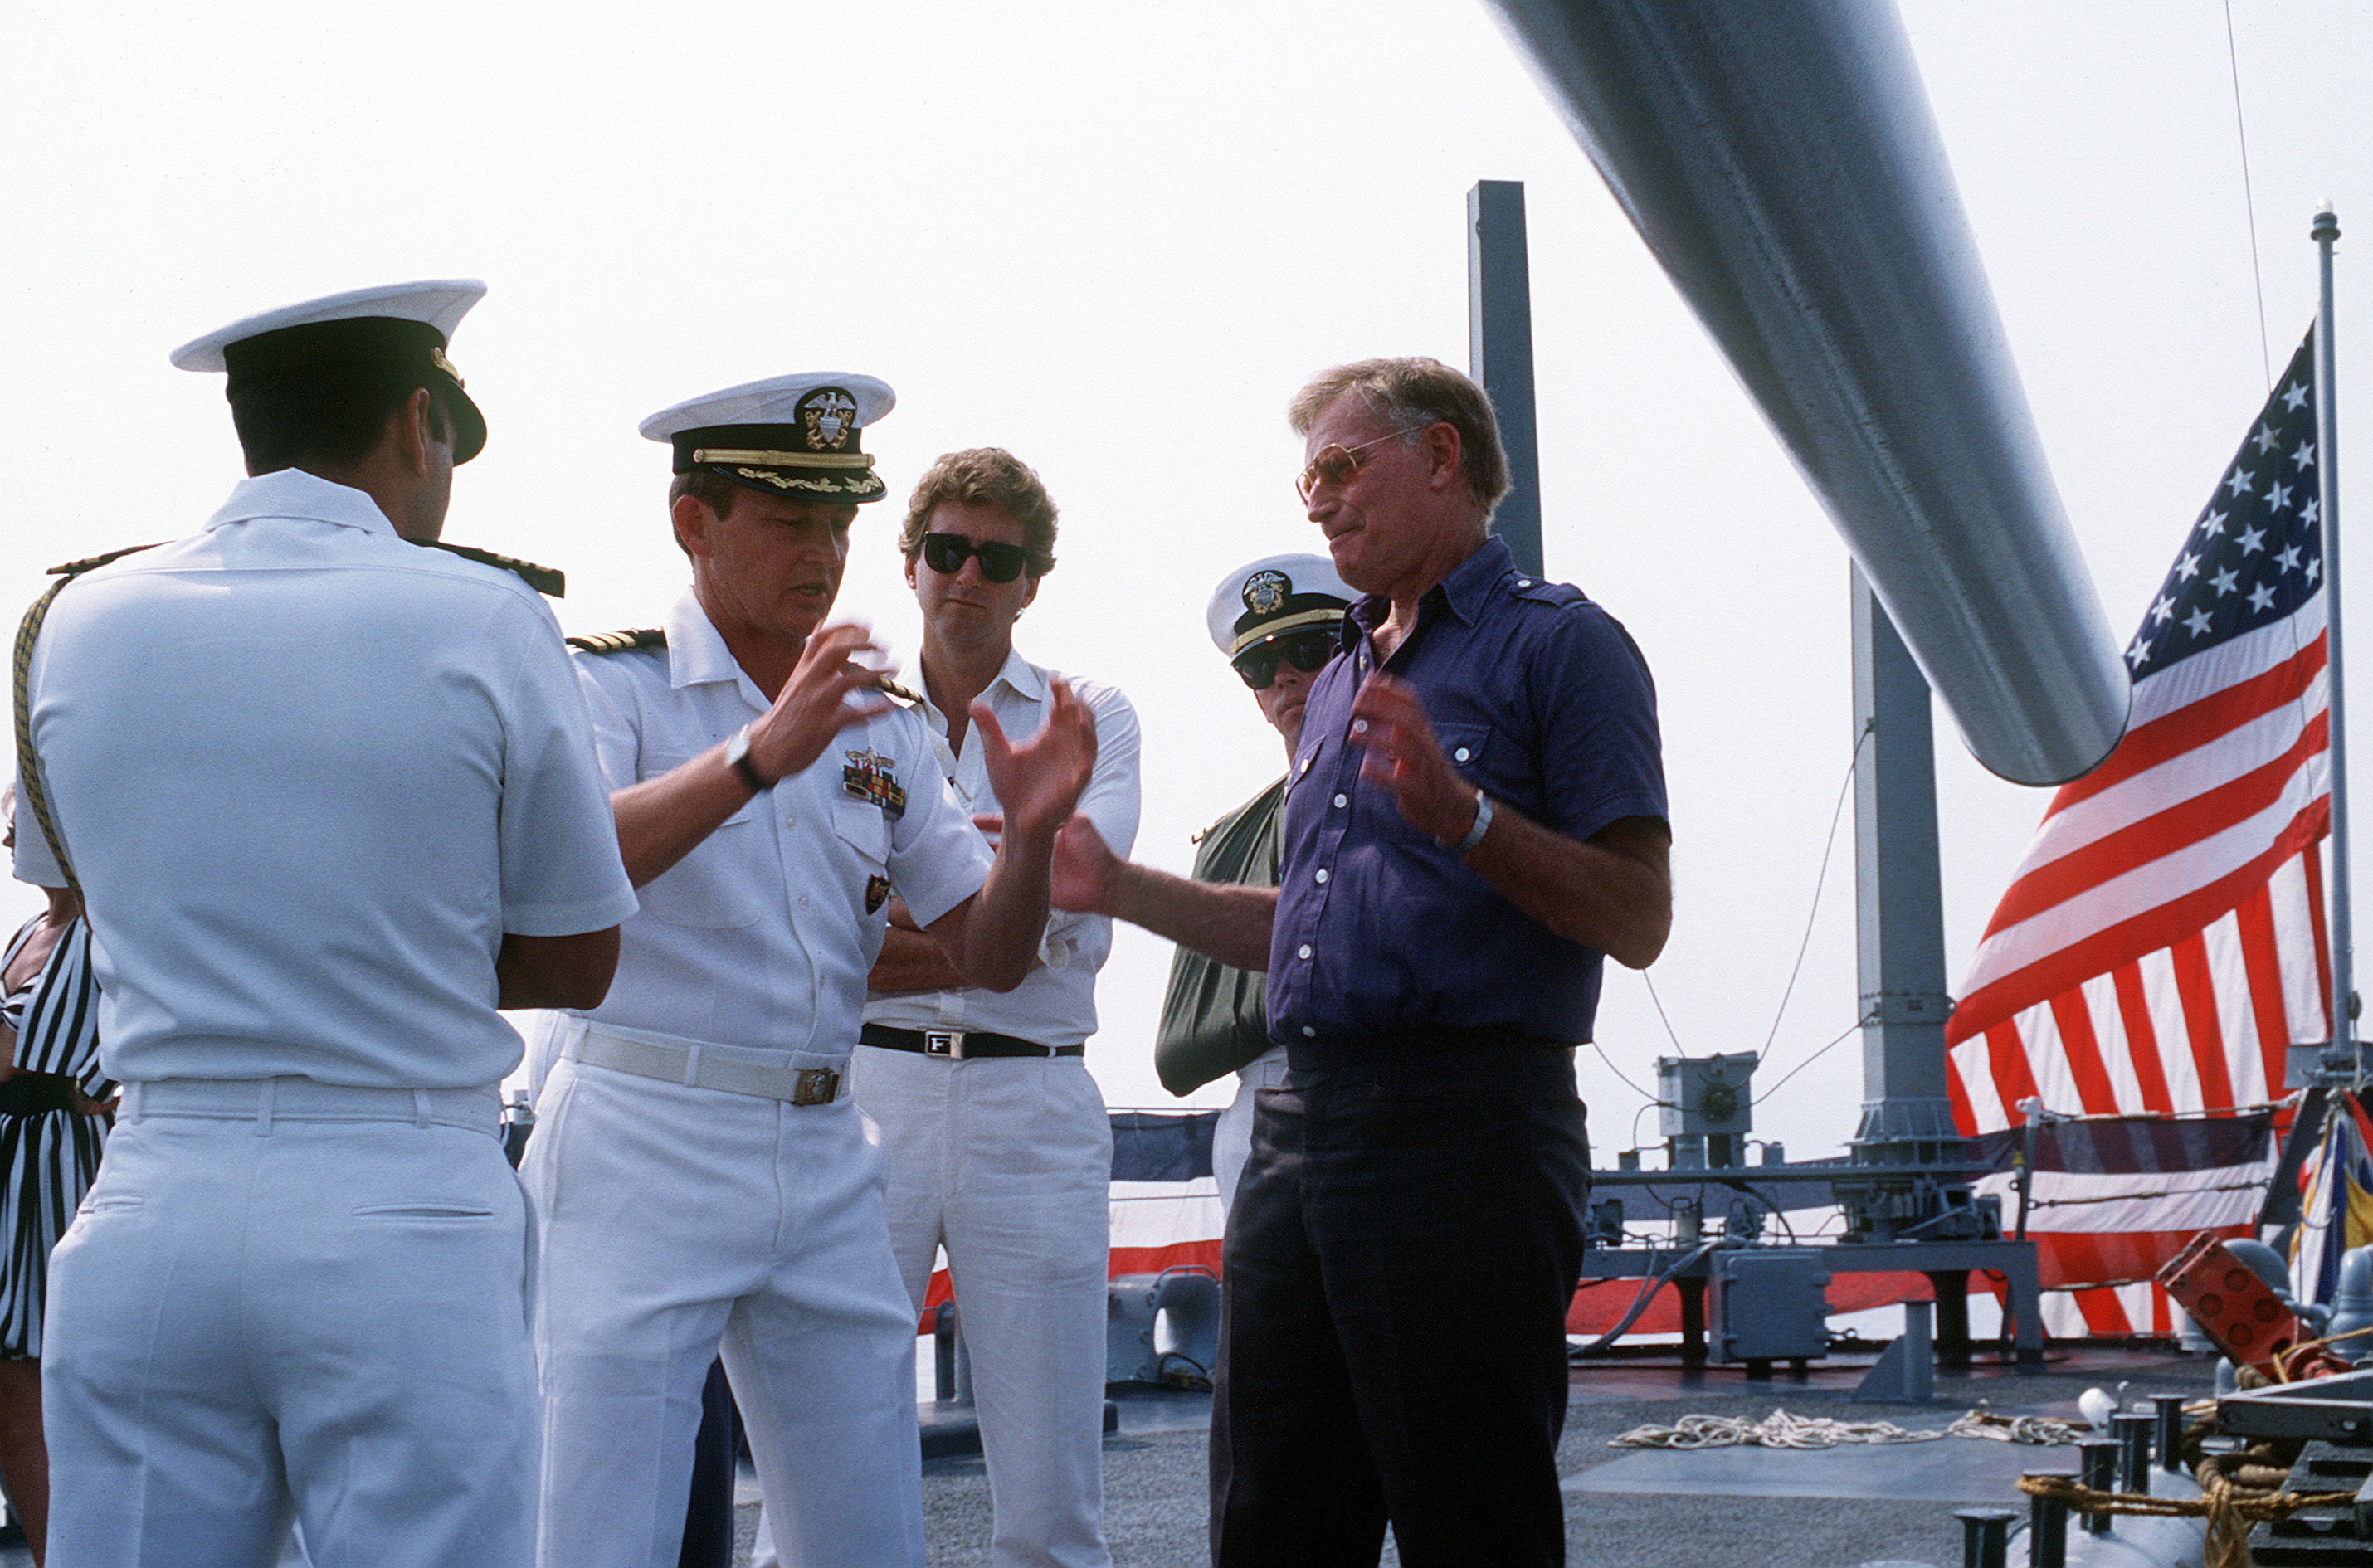 An officer explains ship operations to actor Charlton Heston on the deck of the guided missile cruiser USS BELKNAP (CG-26). The BELKNAP and other U.S. Navy vessels are visiting Cannes during the July 4th celebration sponsored by the United Services Organization (USO) at the Cannes Film Festival Hall. Festival events include a parade of World War II vehicles, a concert for residents and visitors and a gala dinner-dance for special guests